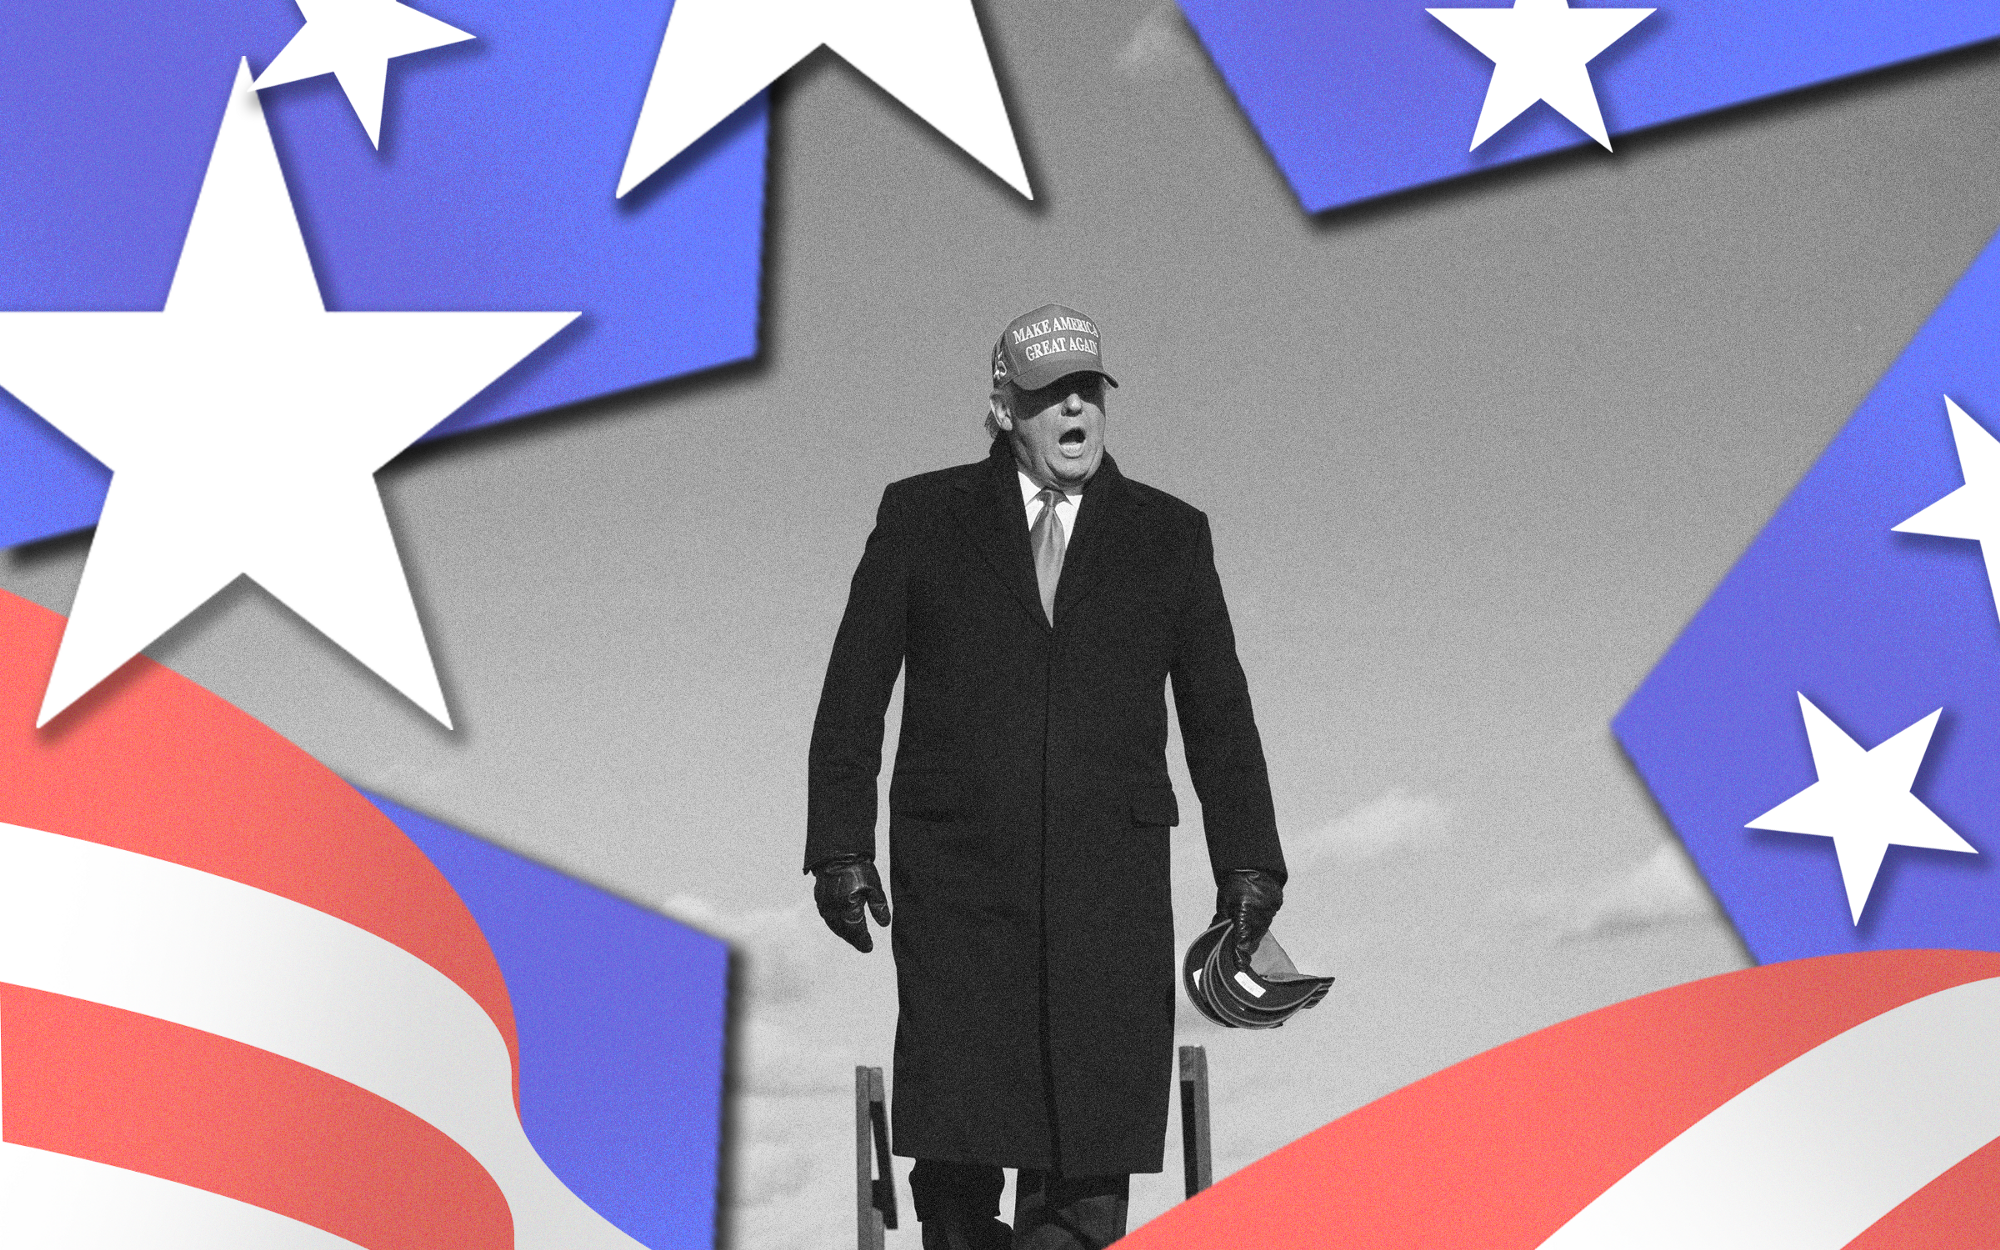 Black and white image of Donald Trump against stars and stripes graphics in foreground.